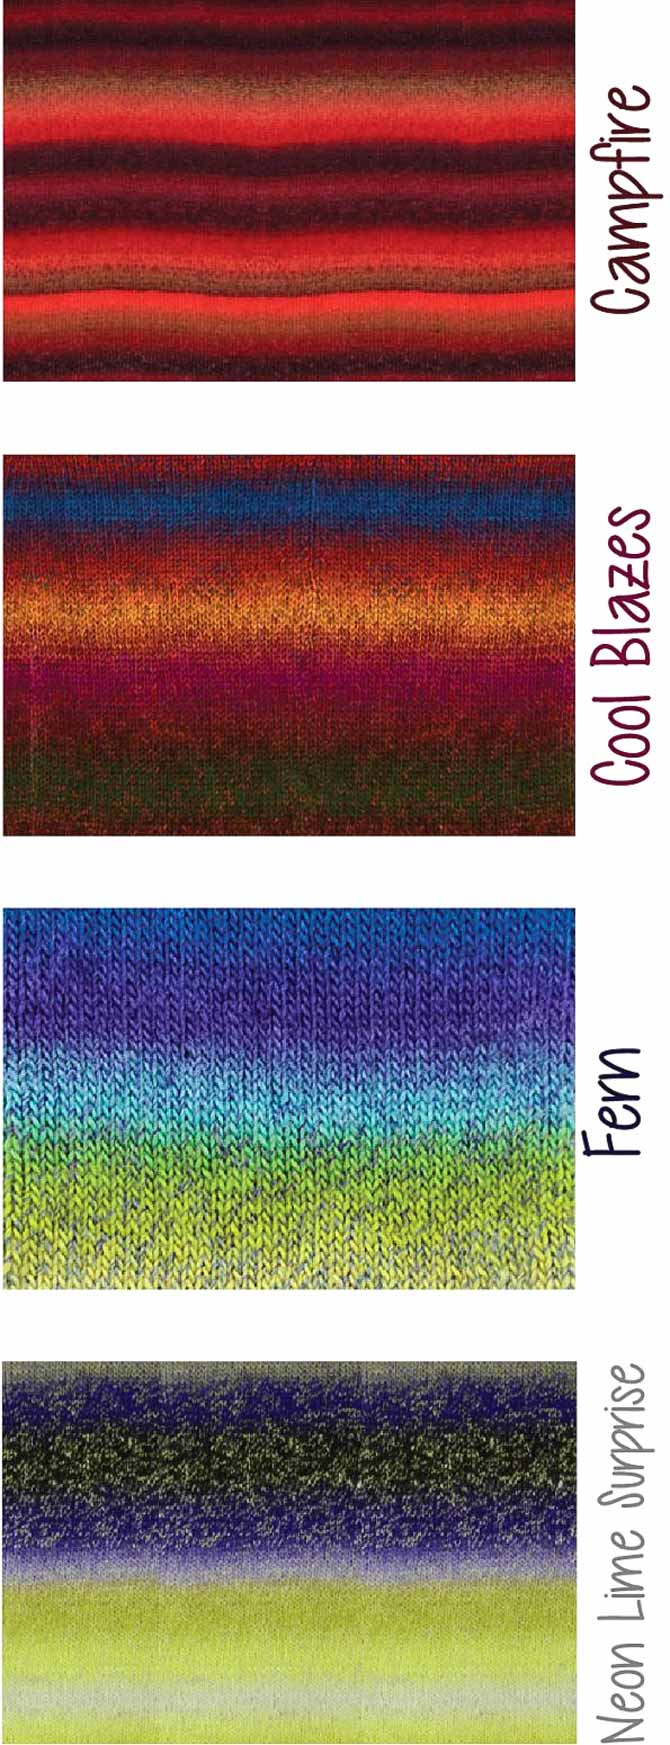 4 different swatches of Classic Shades yarn showing different patterns in the way the repeats are spaced